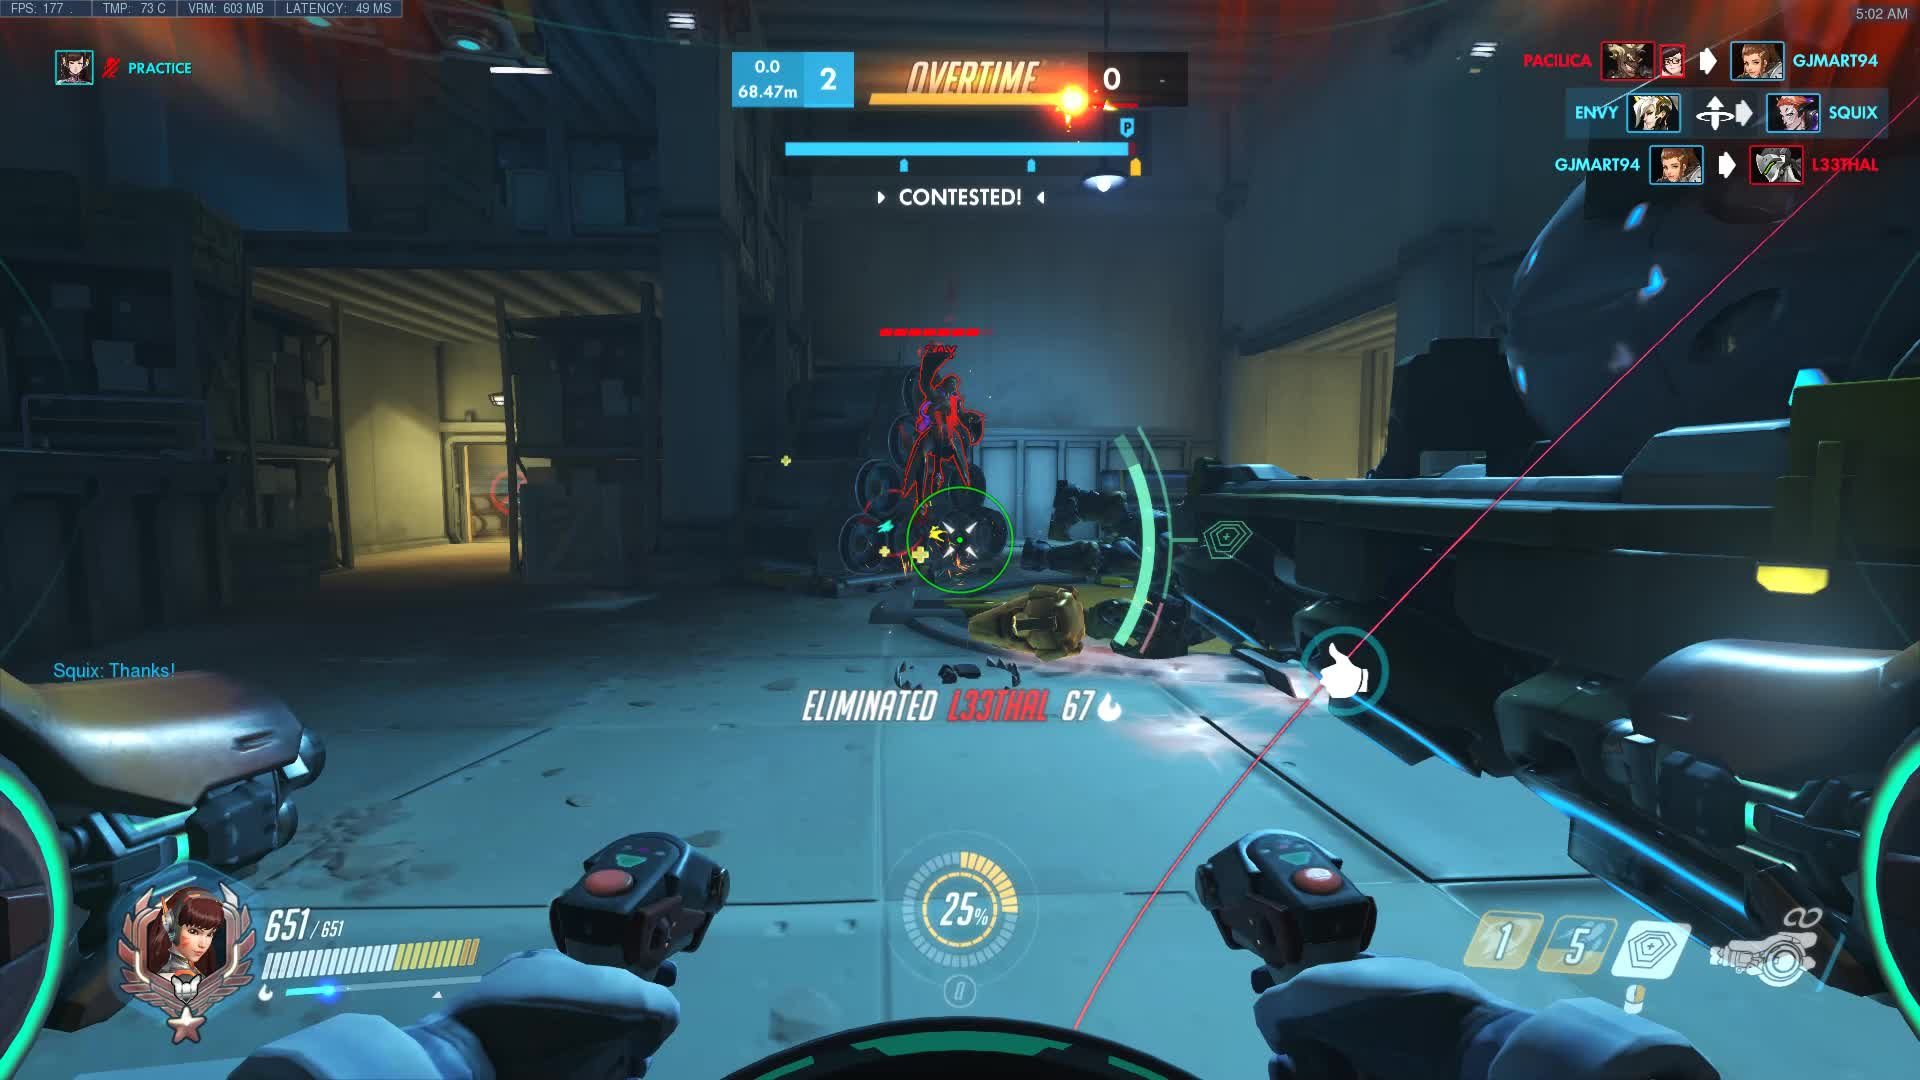 overwatch, aimbot looking GIFs